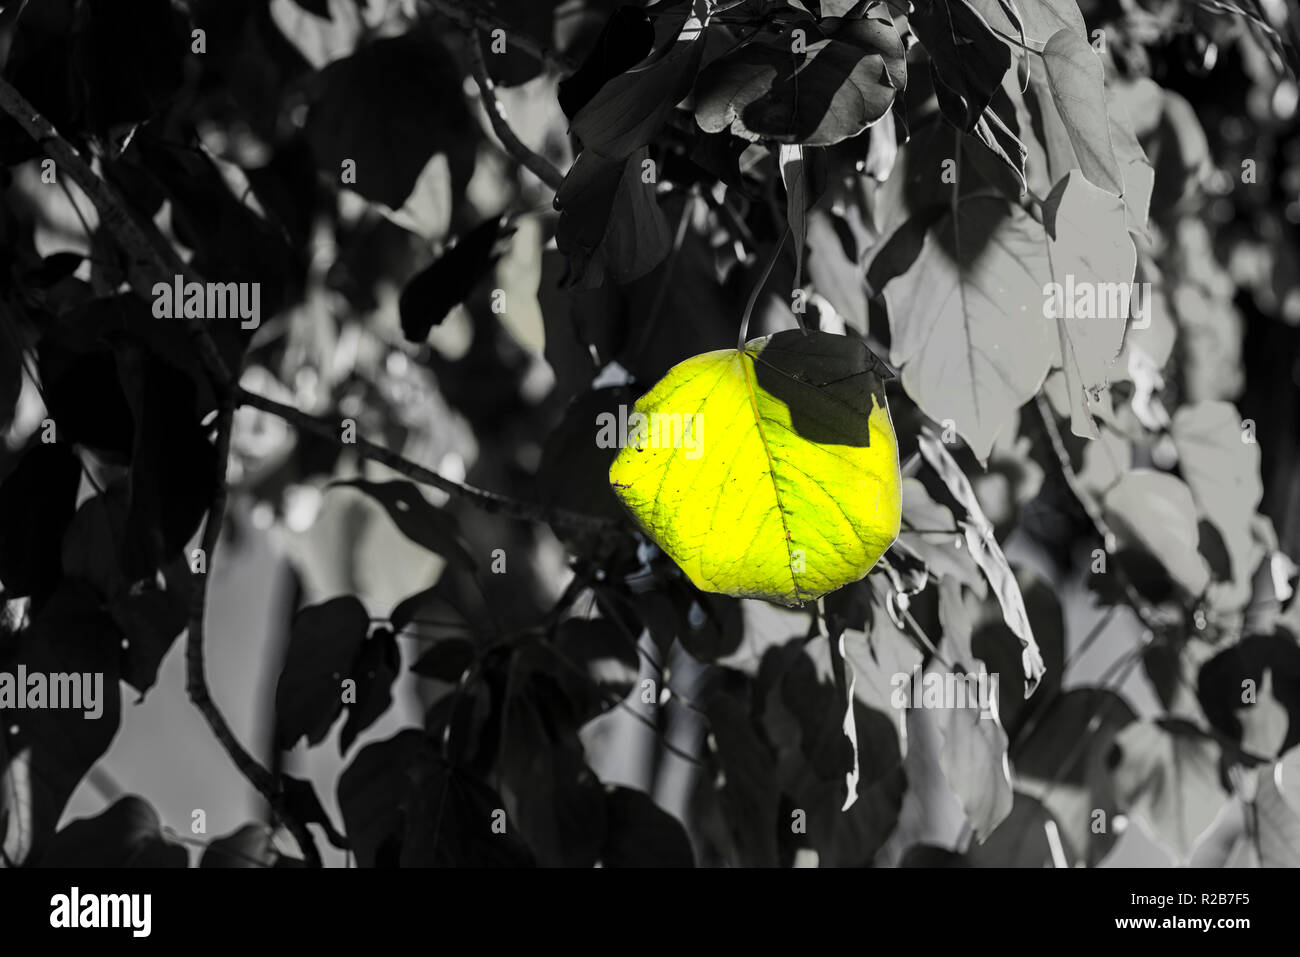 Photograph of a group of leaves with the use of selective color. - Stock Image